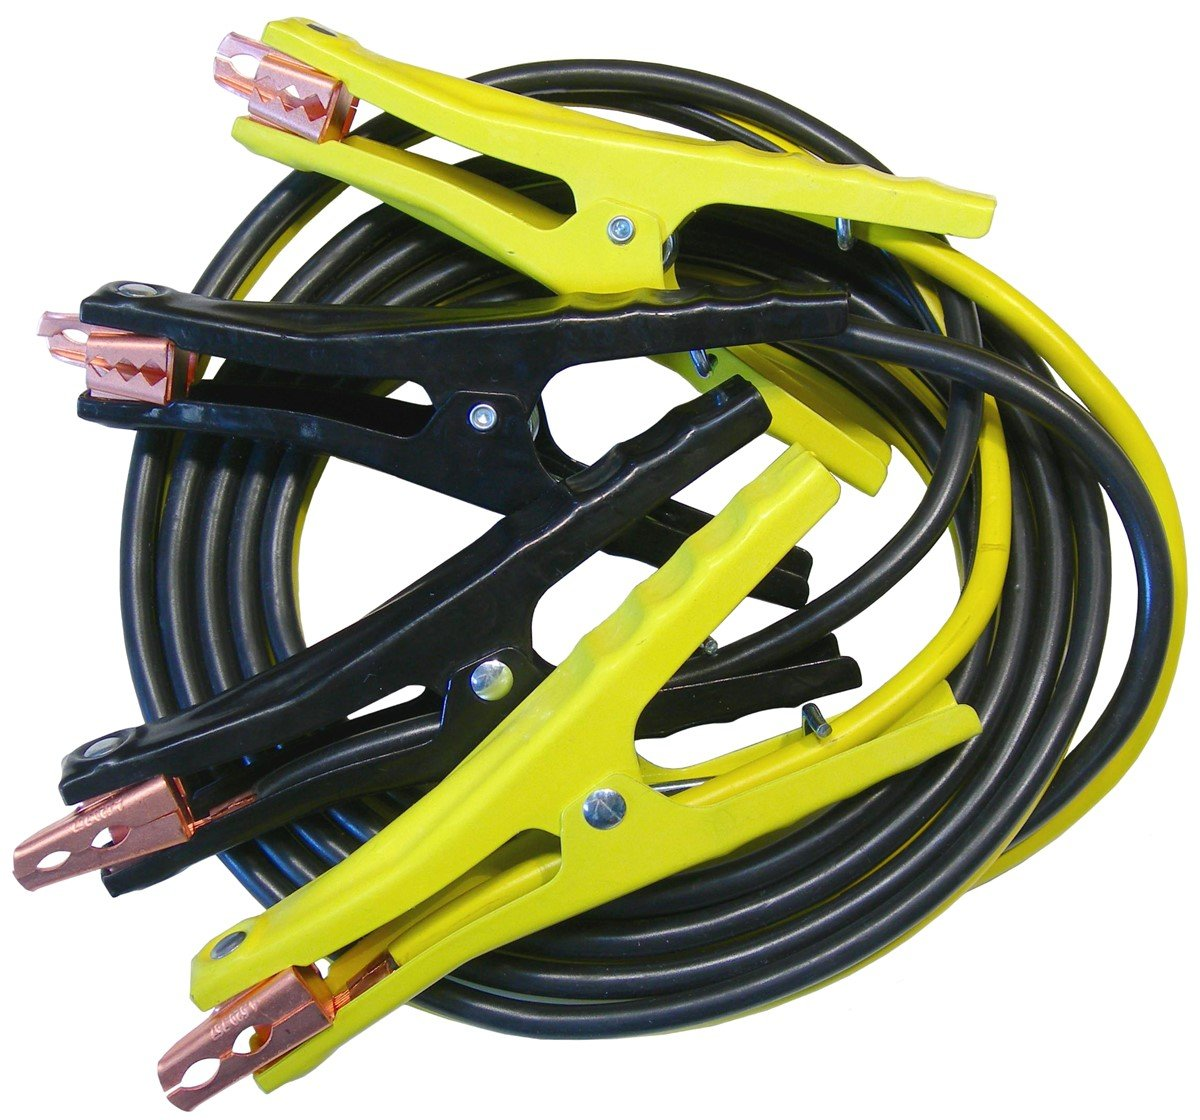 Pico 8174C 16 feet 6 AWG Battery Booster/Jumper Cables w/Extended Jaws for Side Mount by Pico